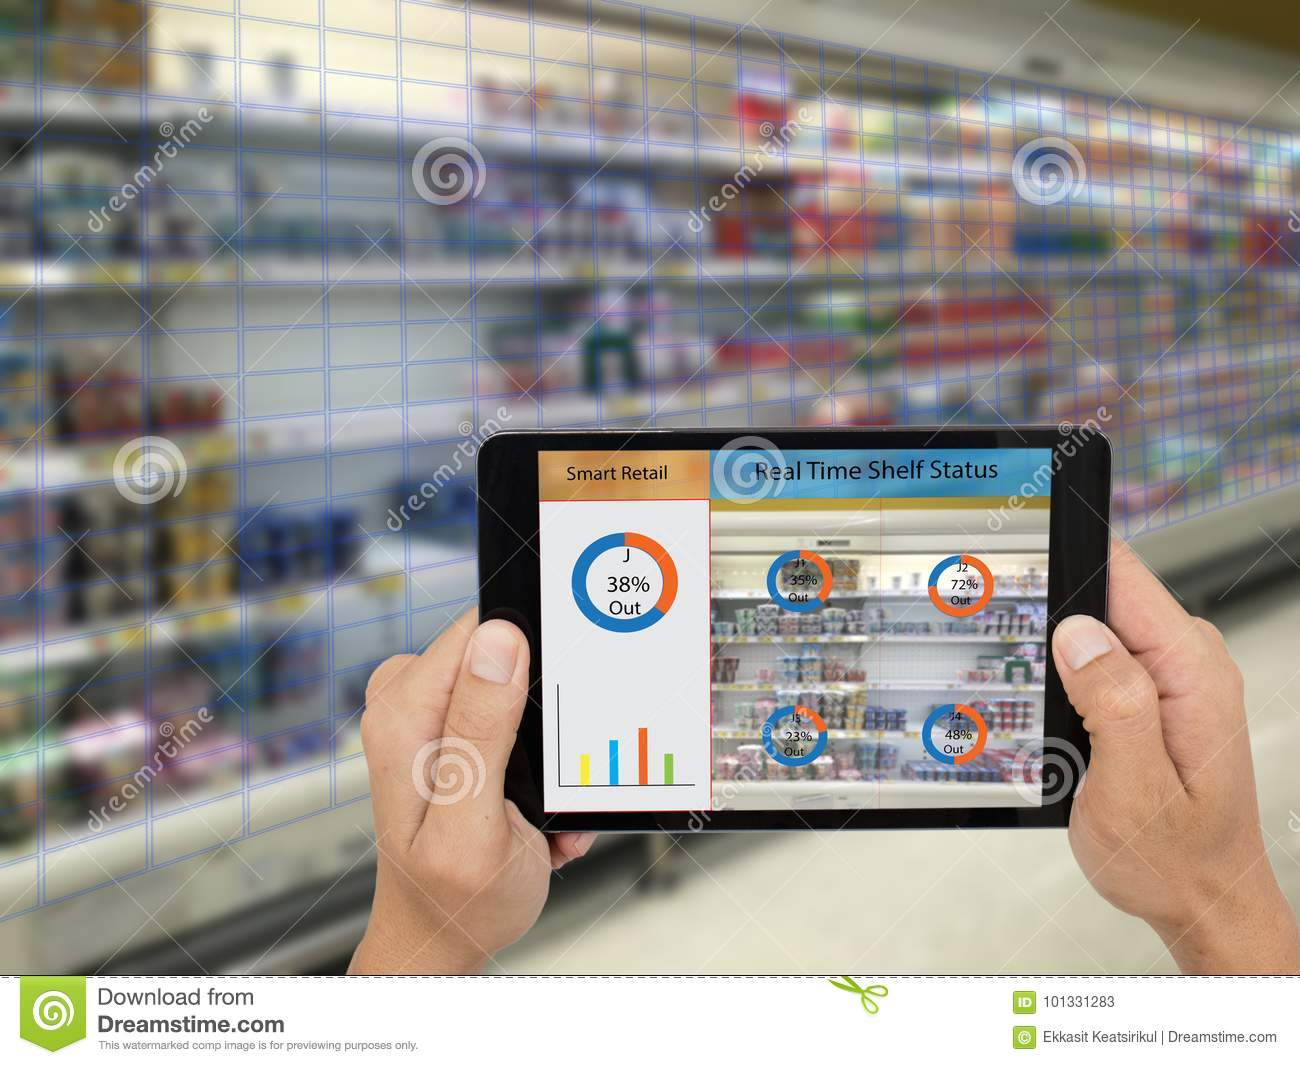 Iot, internet of things,smart retail concepts,A store s manager can check what data of real time insights into shelf status from